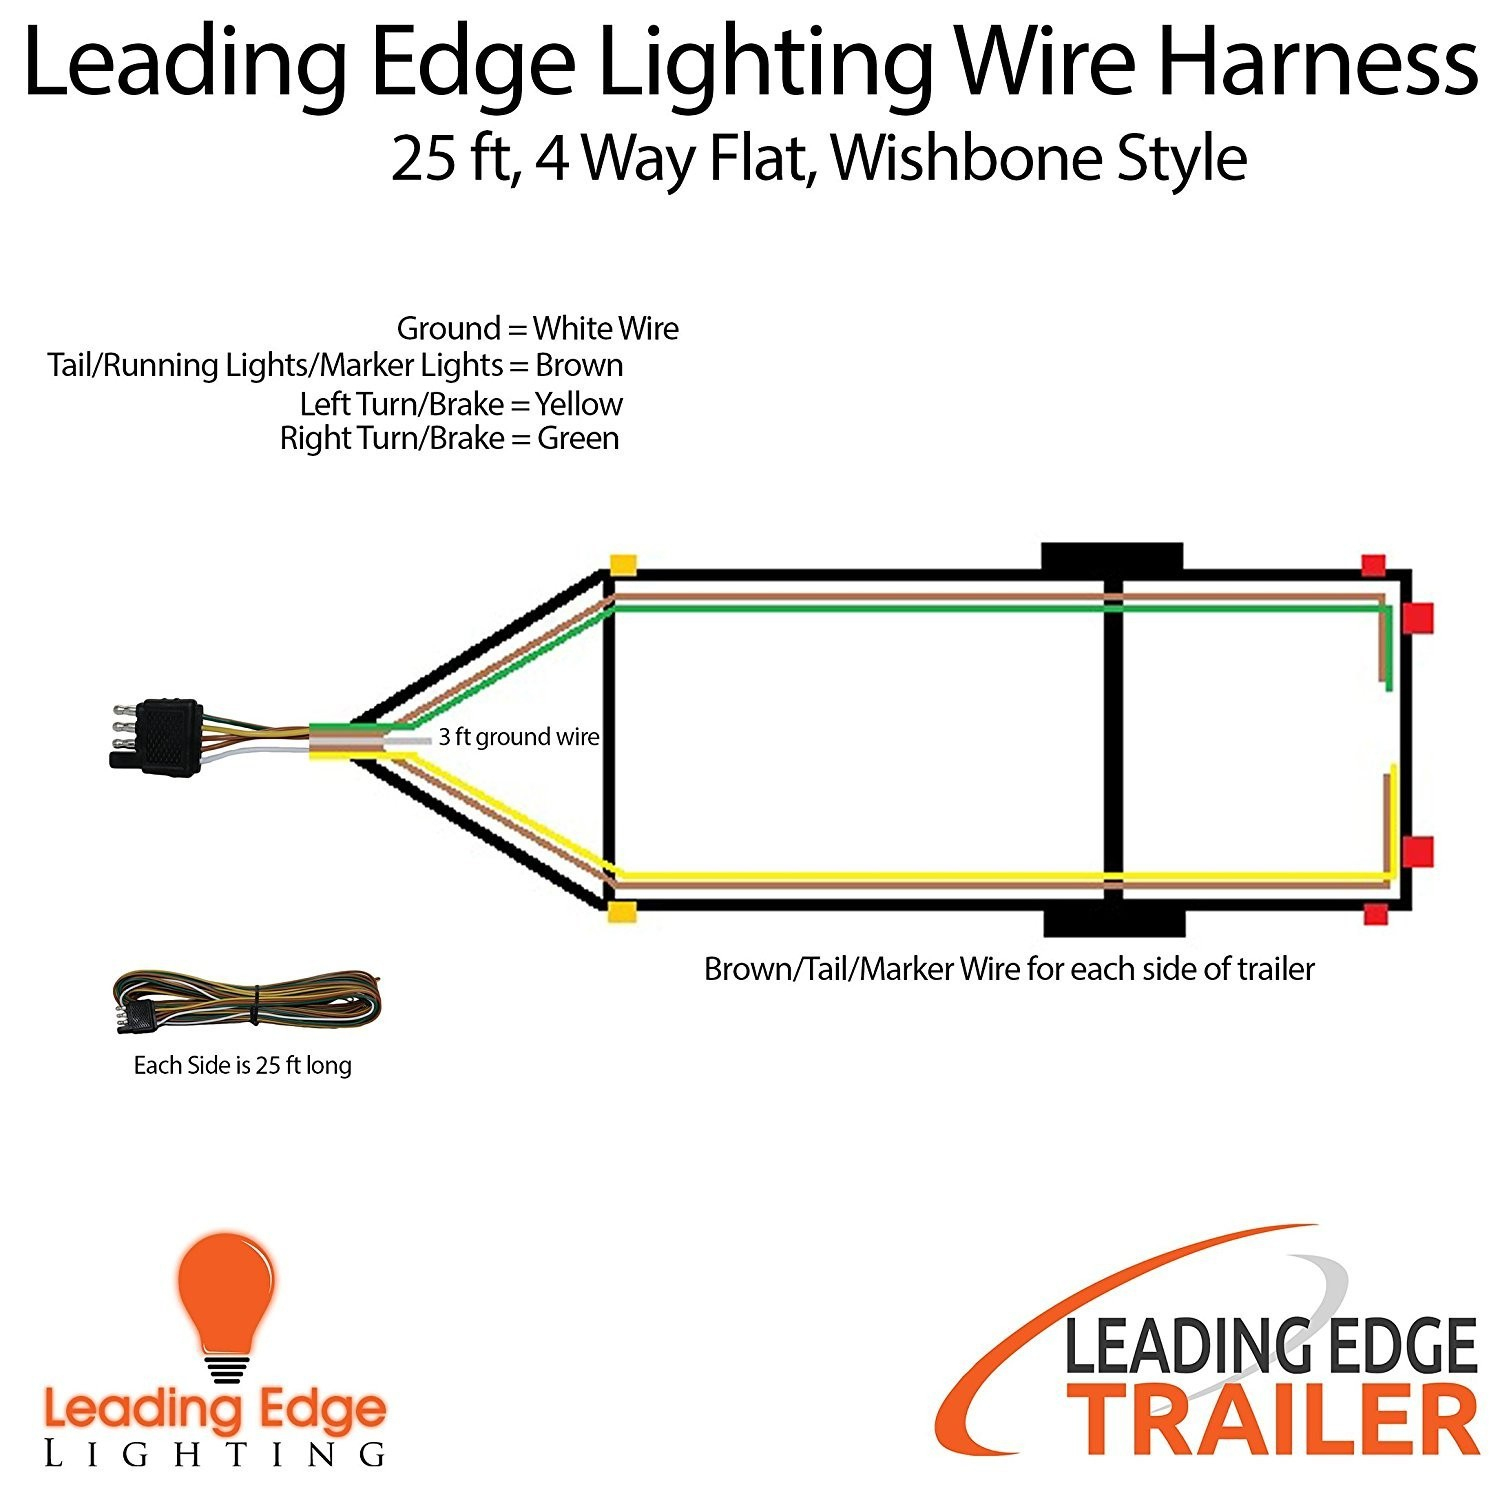 4 Wire Harness | Wiring Library - 4 Wire Trailer Plug Wiring Diagram